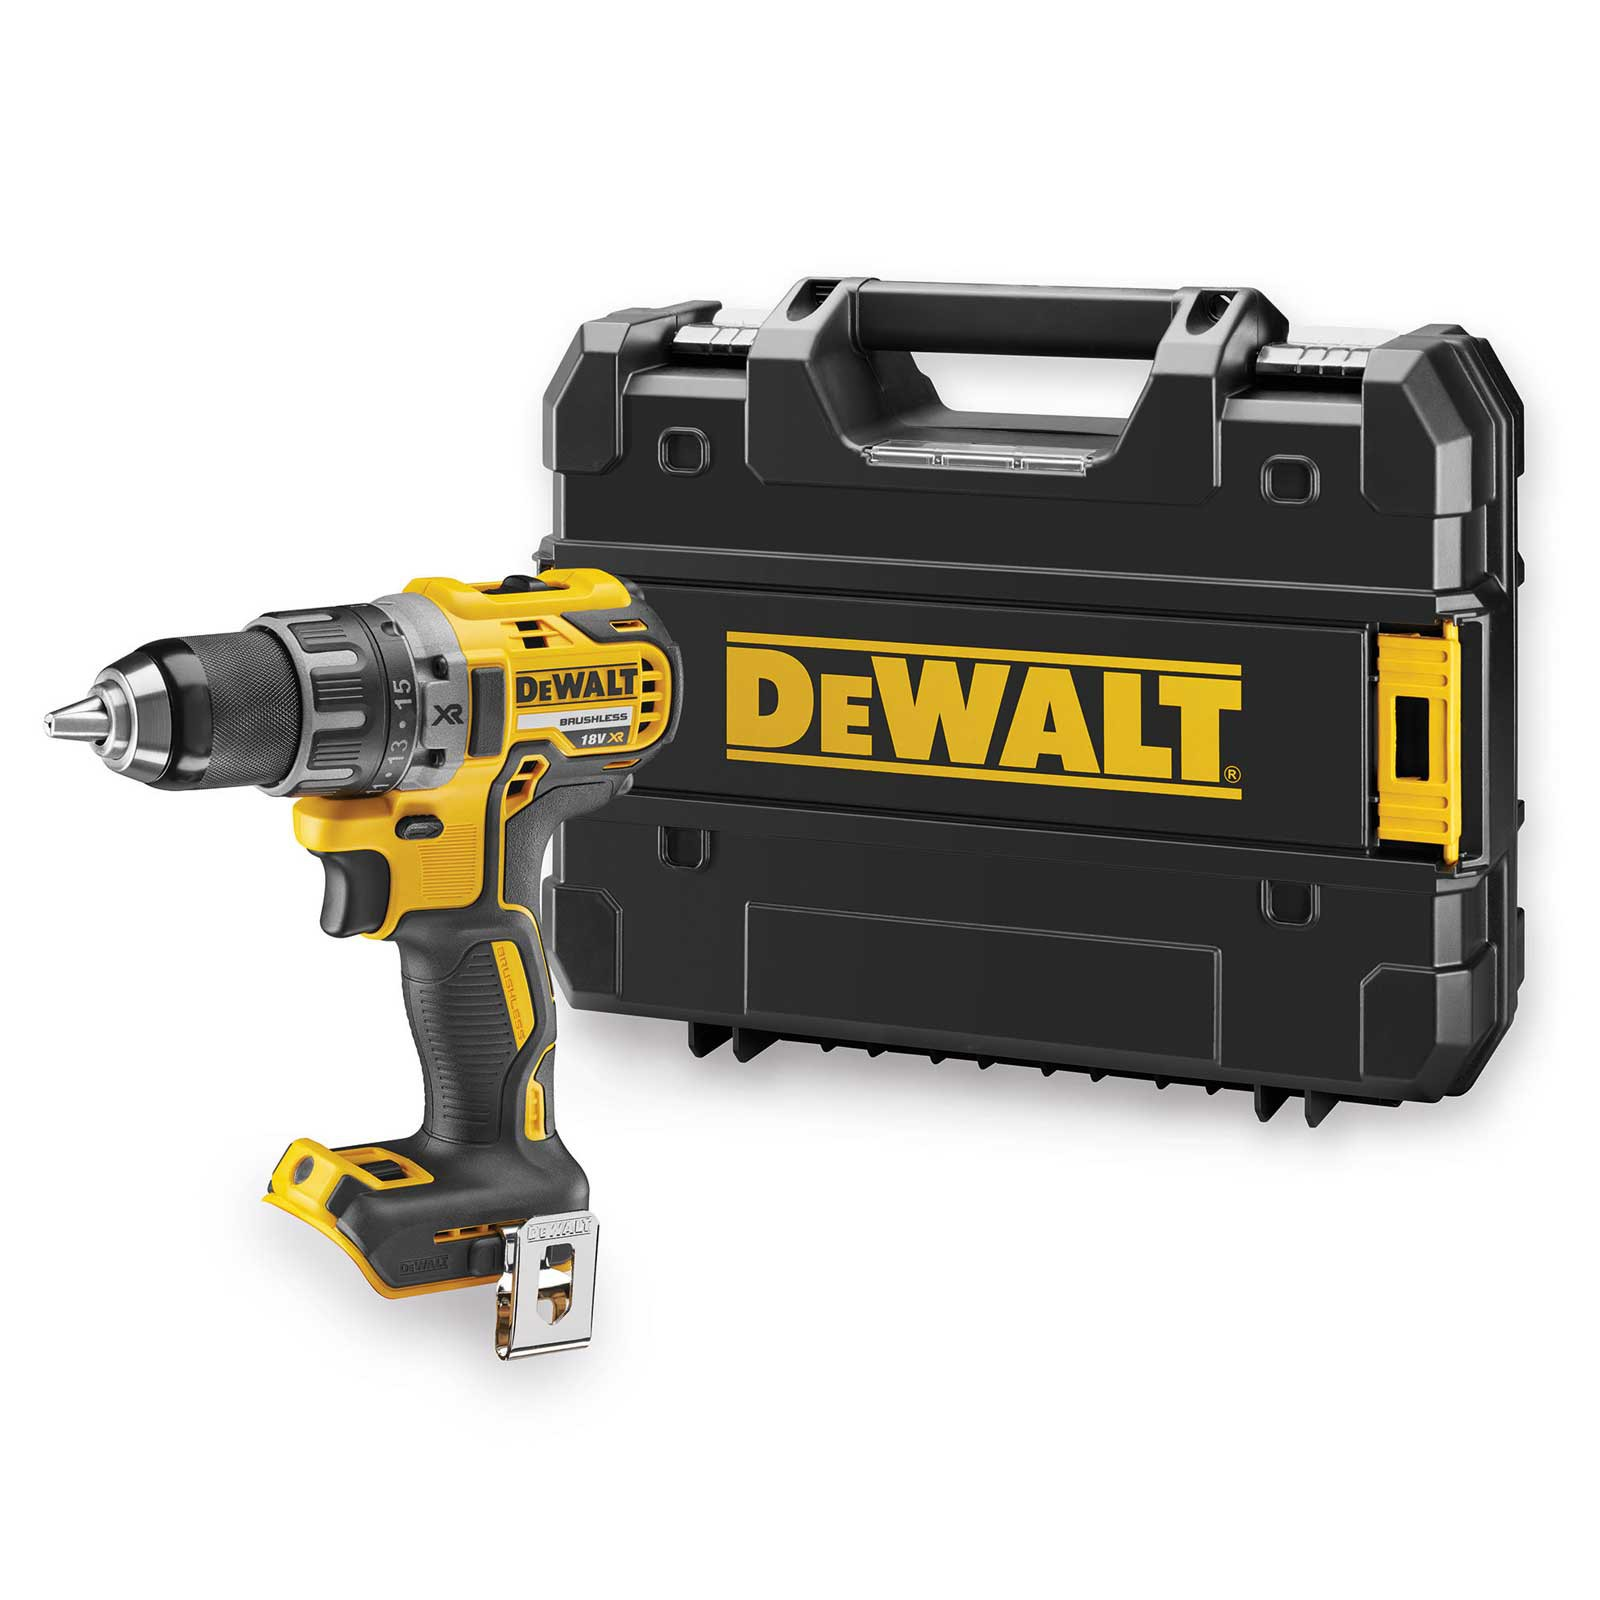 dewalt dcd791nt xj akku bohrschrauber 18 v xr inkl tstak box ebay. Black Bedroom Furniture Sets. Home Design Ideas